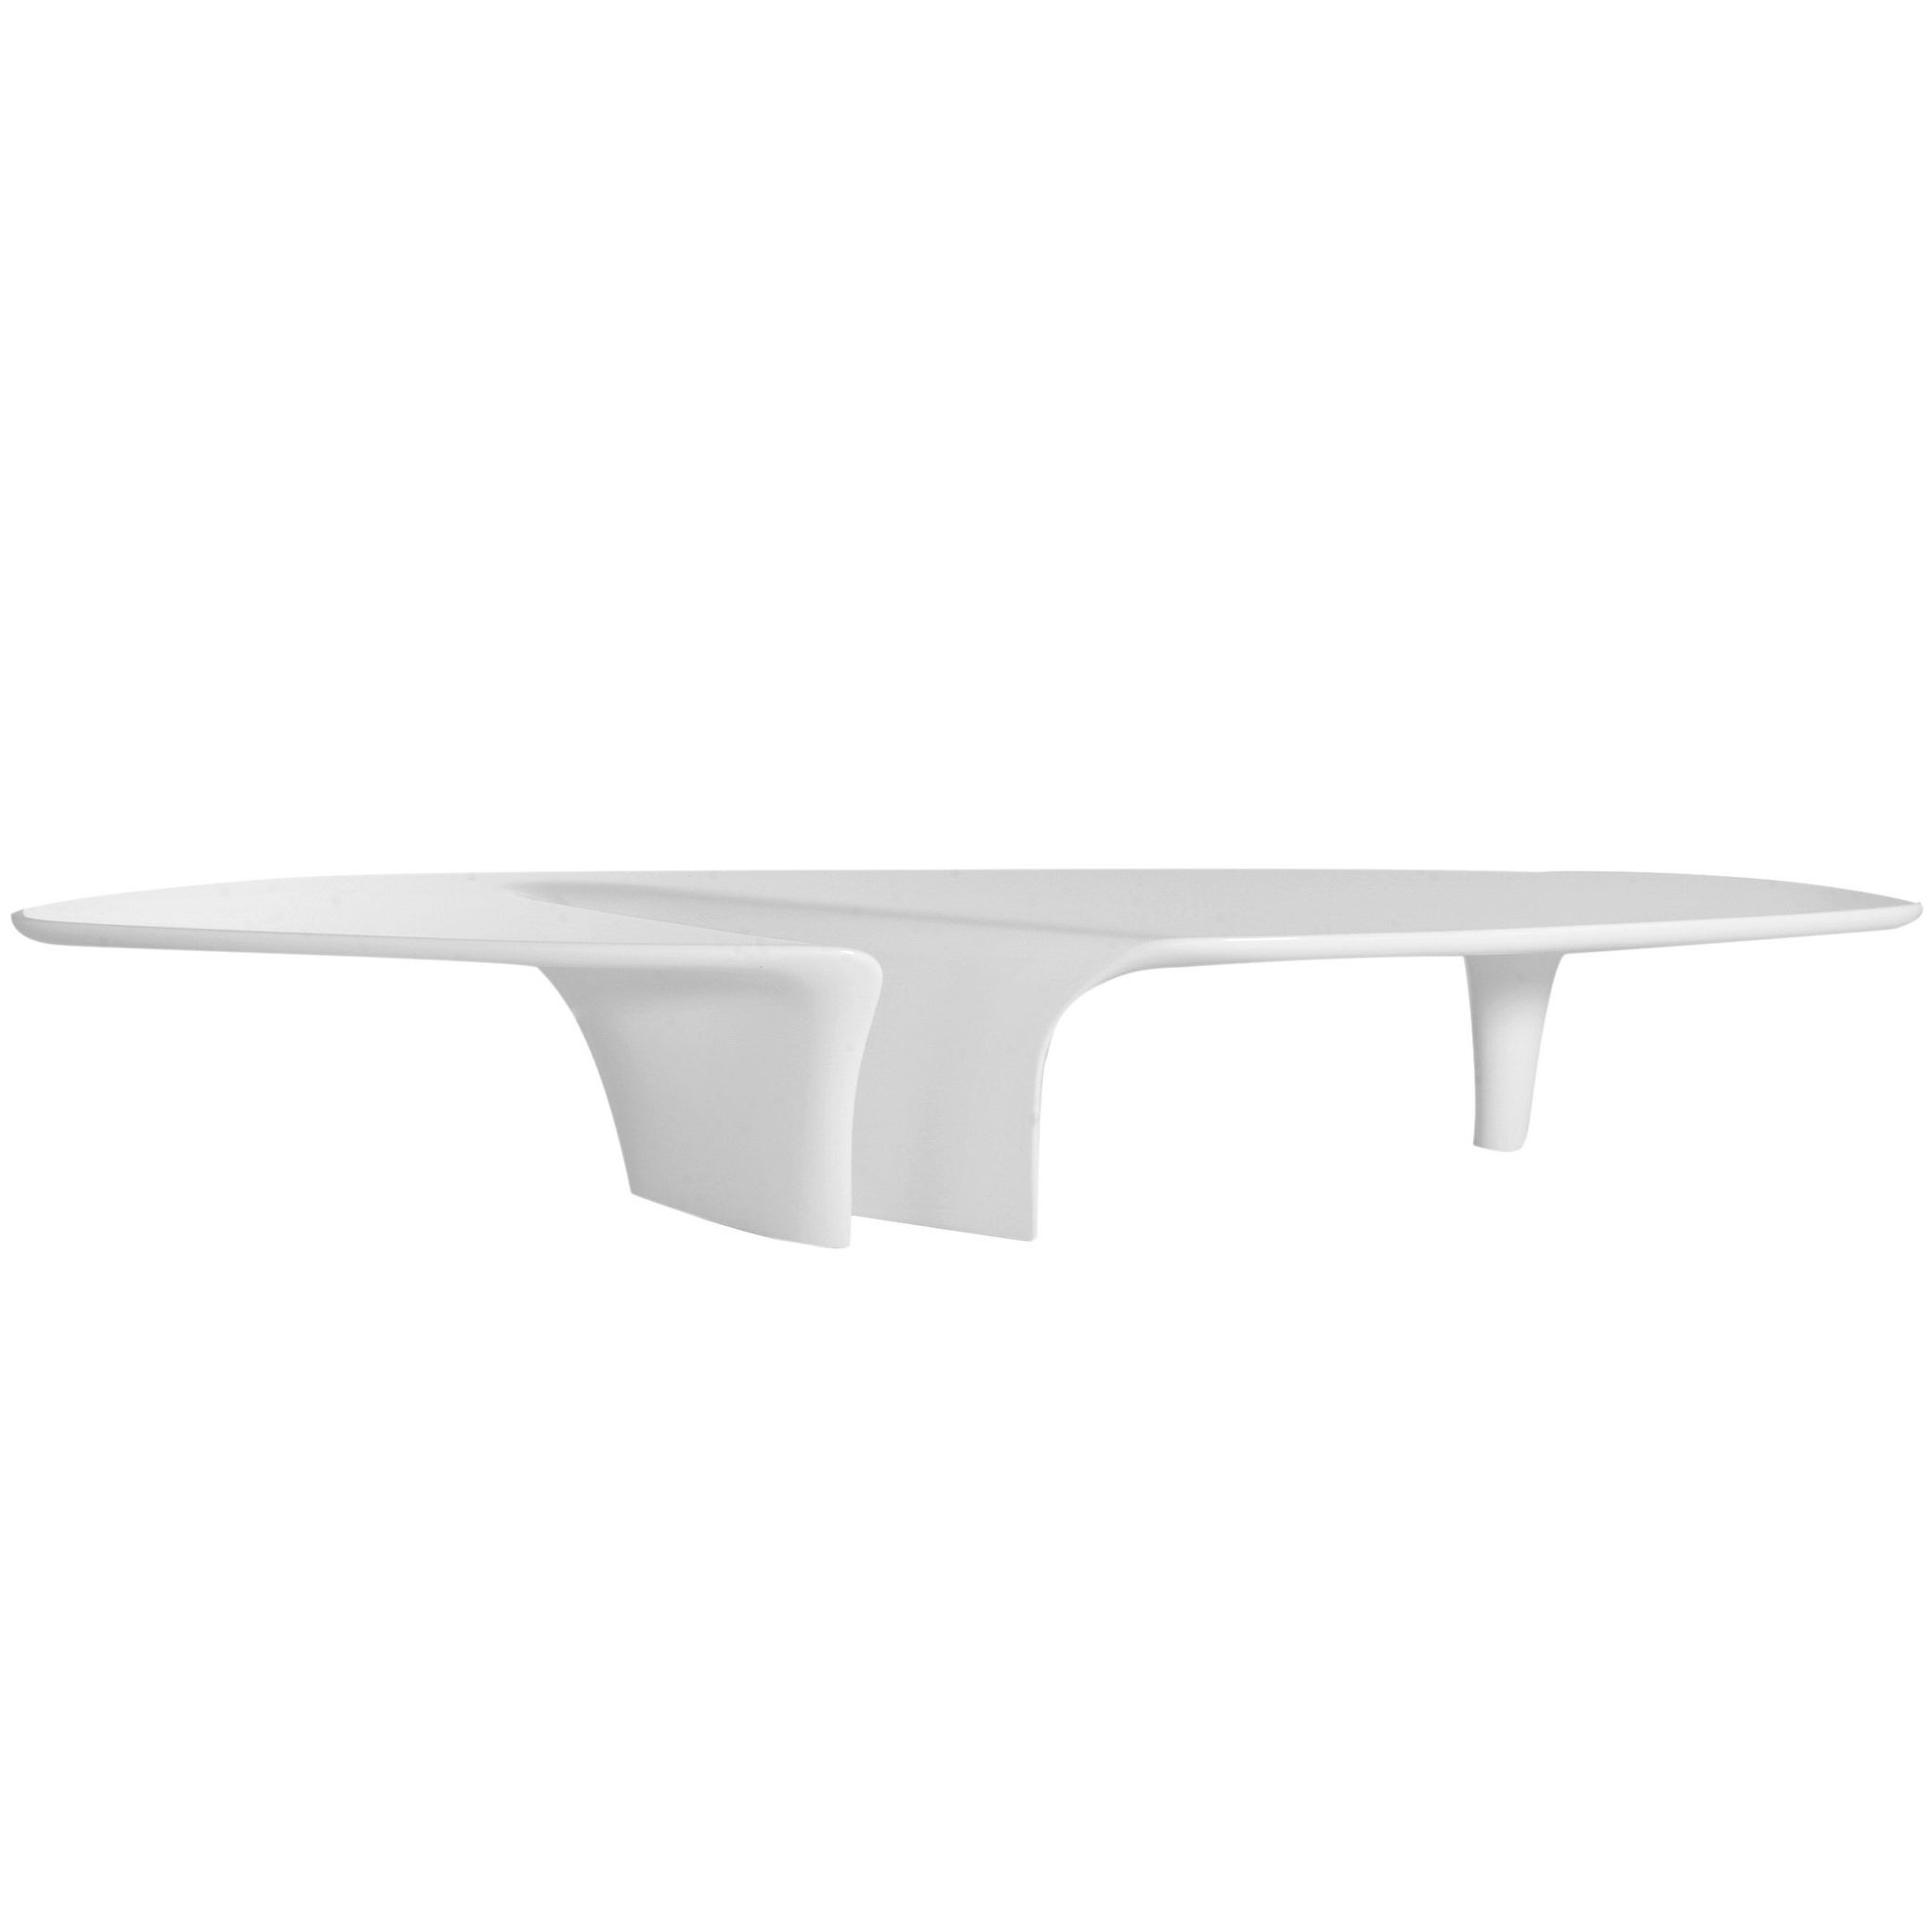 """Waterfall"" Lacquered Coffee Table Designed by Fredrikson Stallard for Driade"